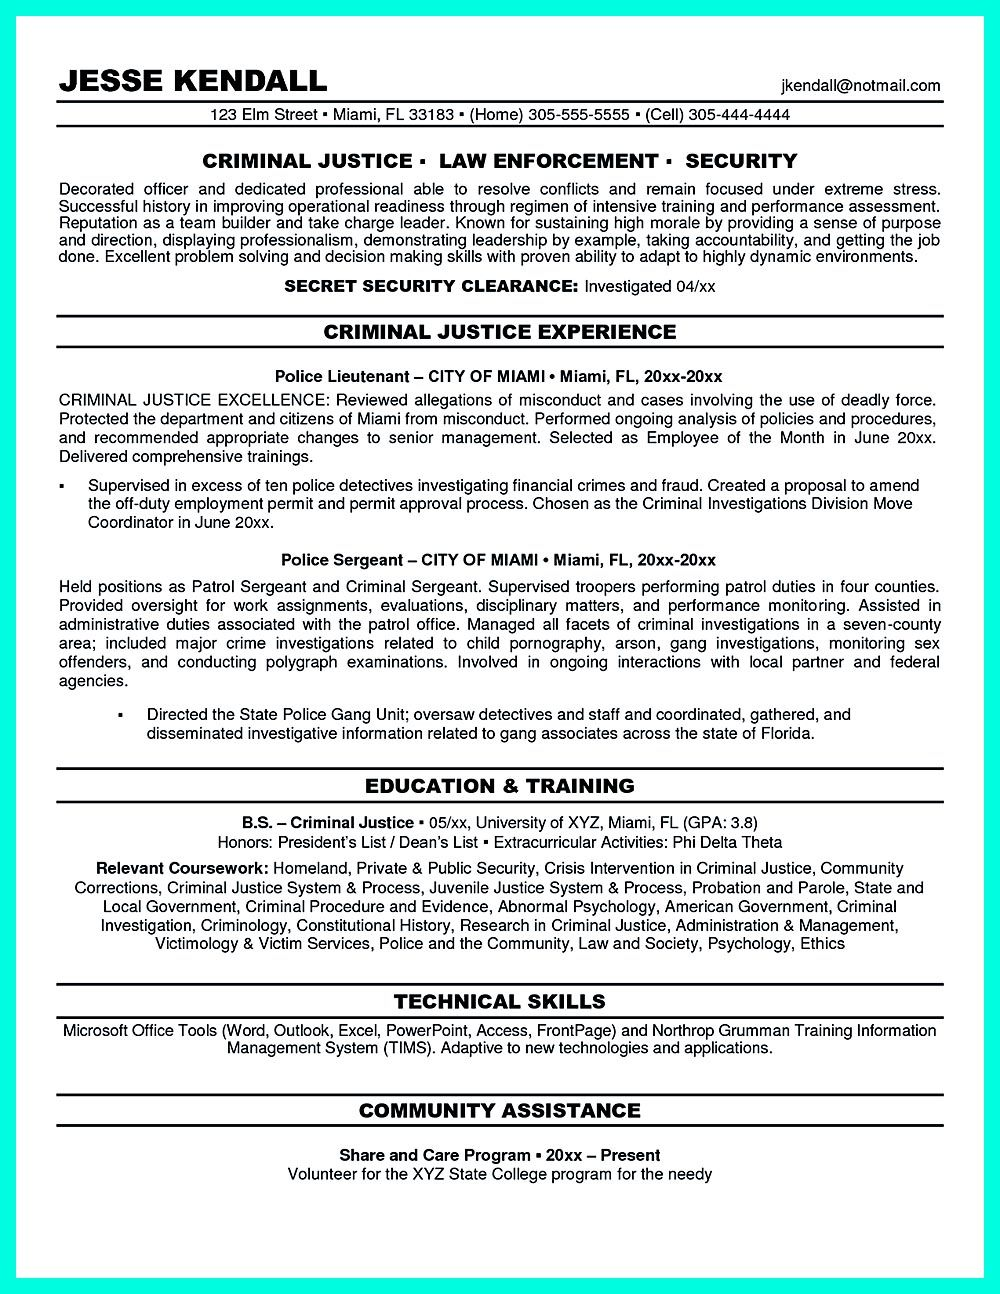 Criminal Justice Resume Uses Summary Section Of The Qualifications To Highlight Your Experience From Previous